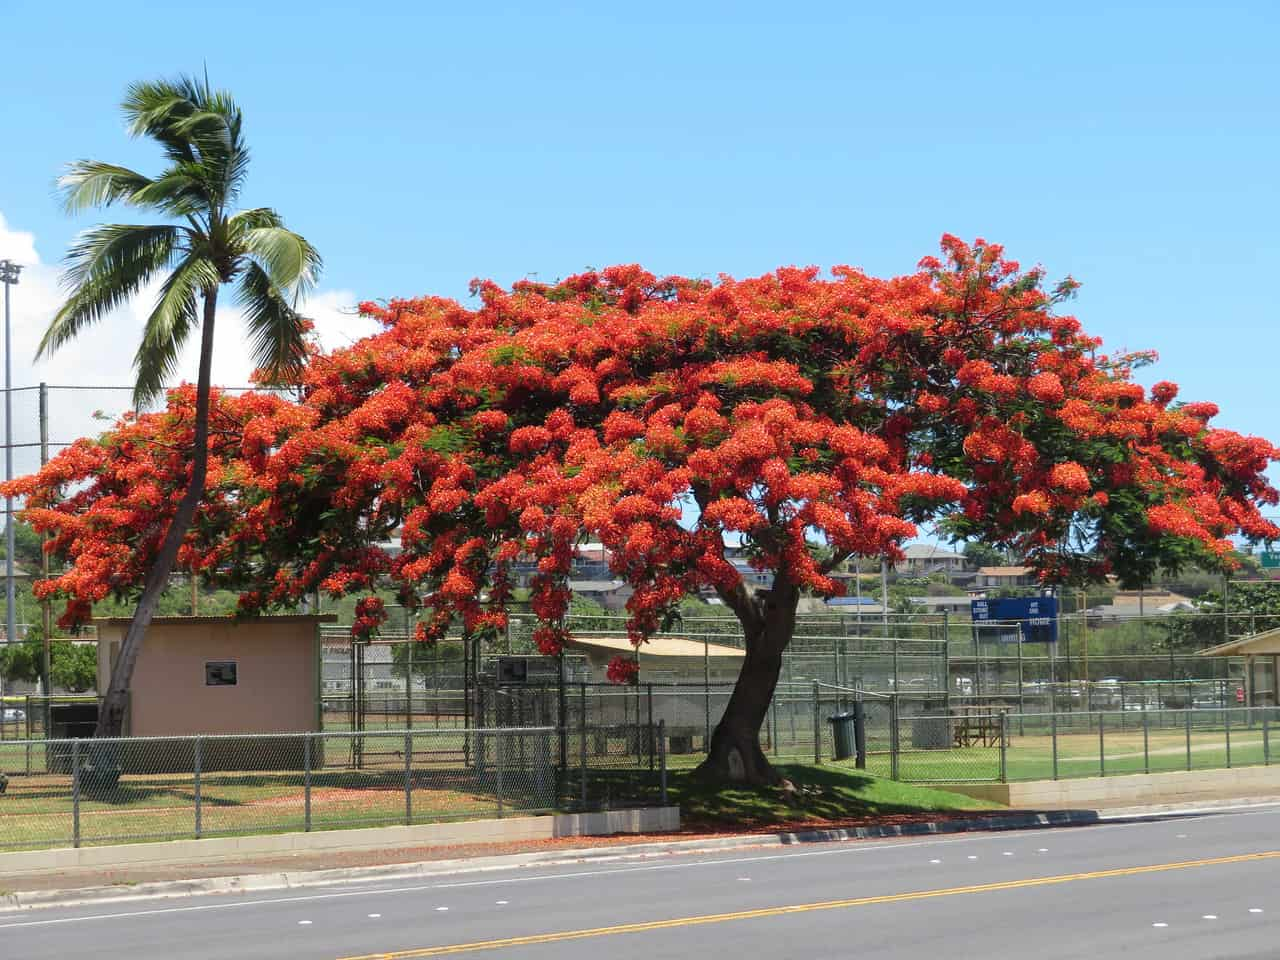 Royal Poinciana Delonix regia